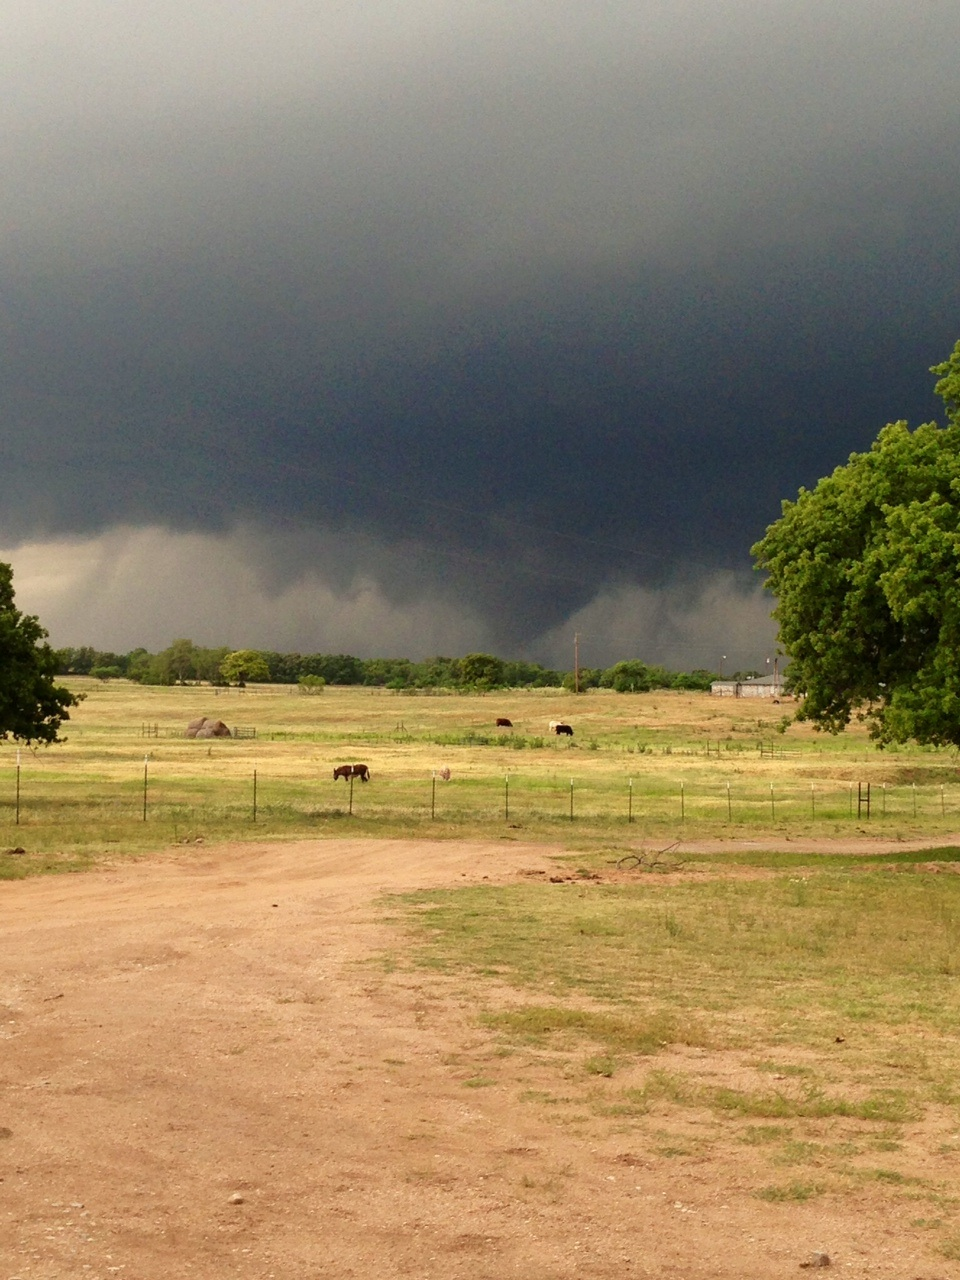 This funnel cloud was seen around 6:25 p.m. Wednesday off FM 2265 about a mile from Texas 101 between Chico and Alvord. Submitted photo by Delia Hernandez.